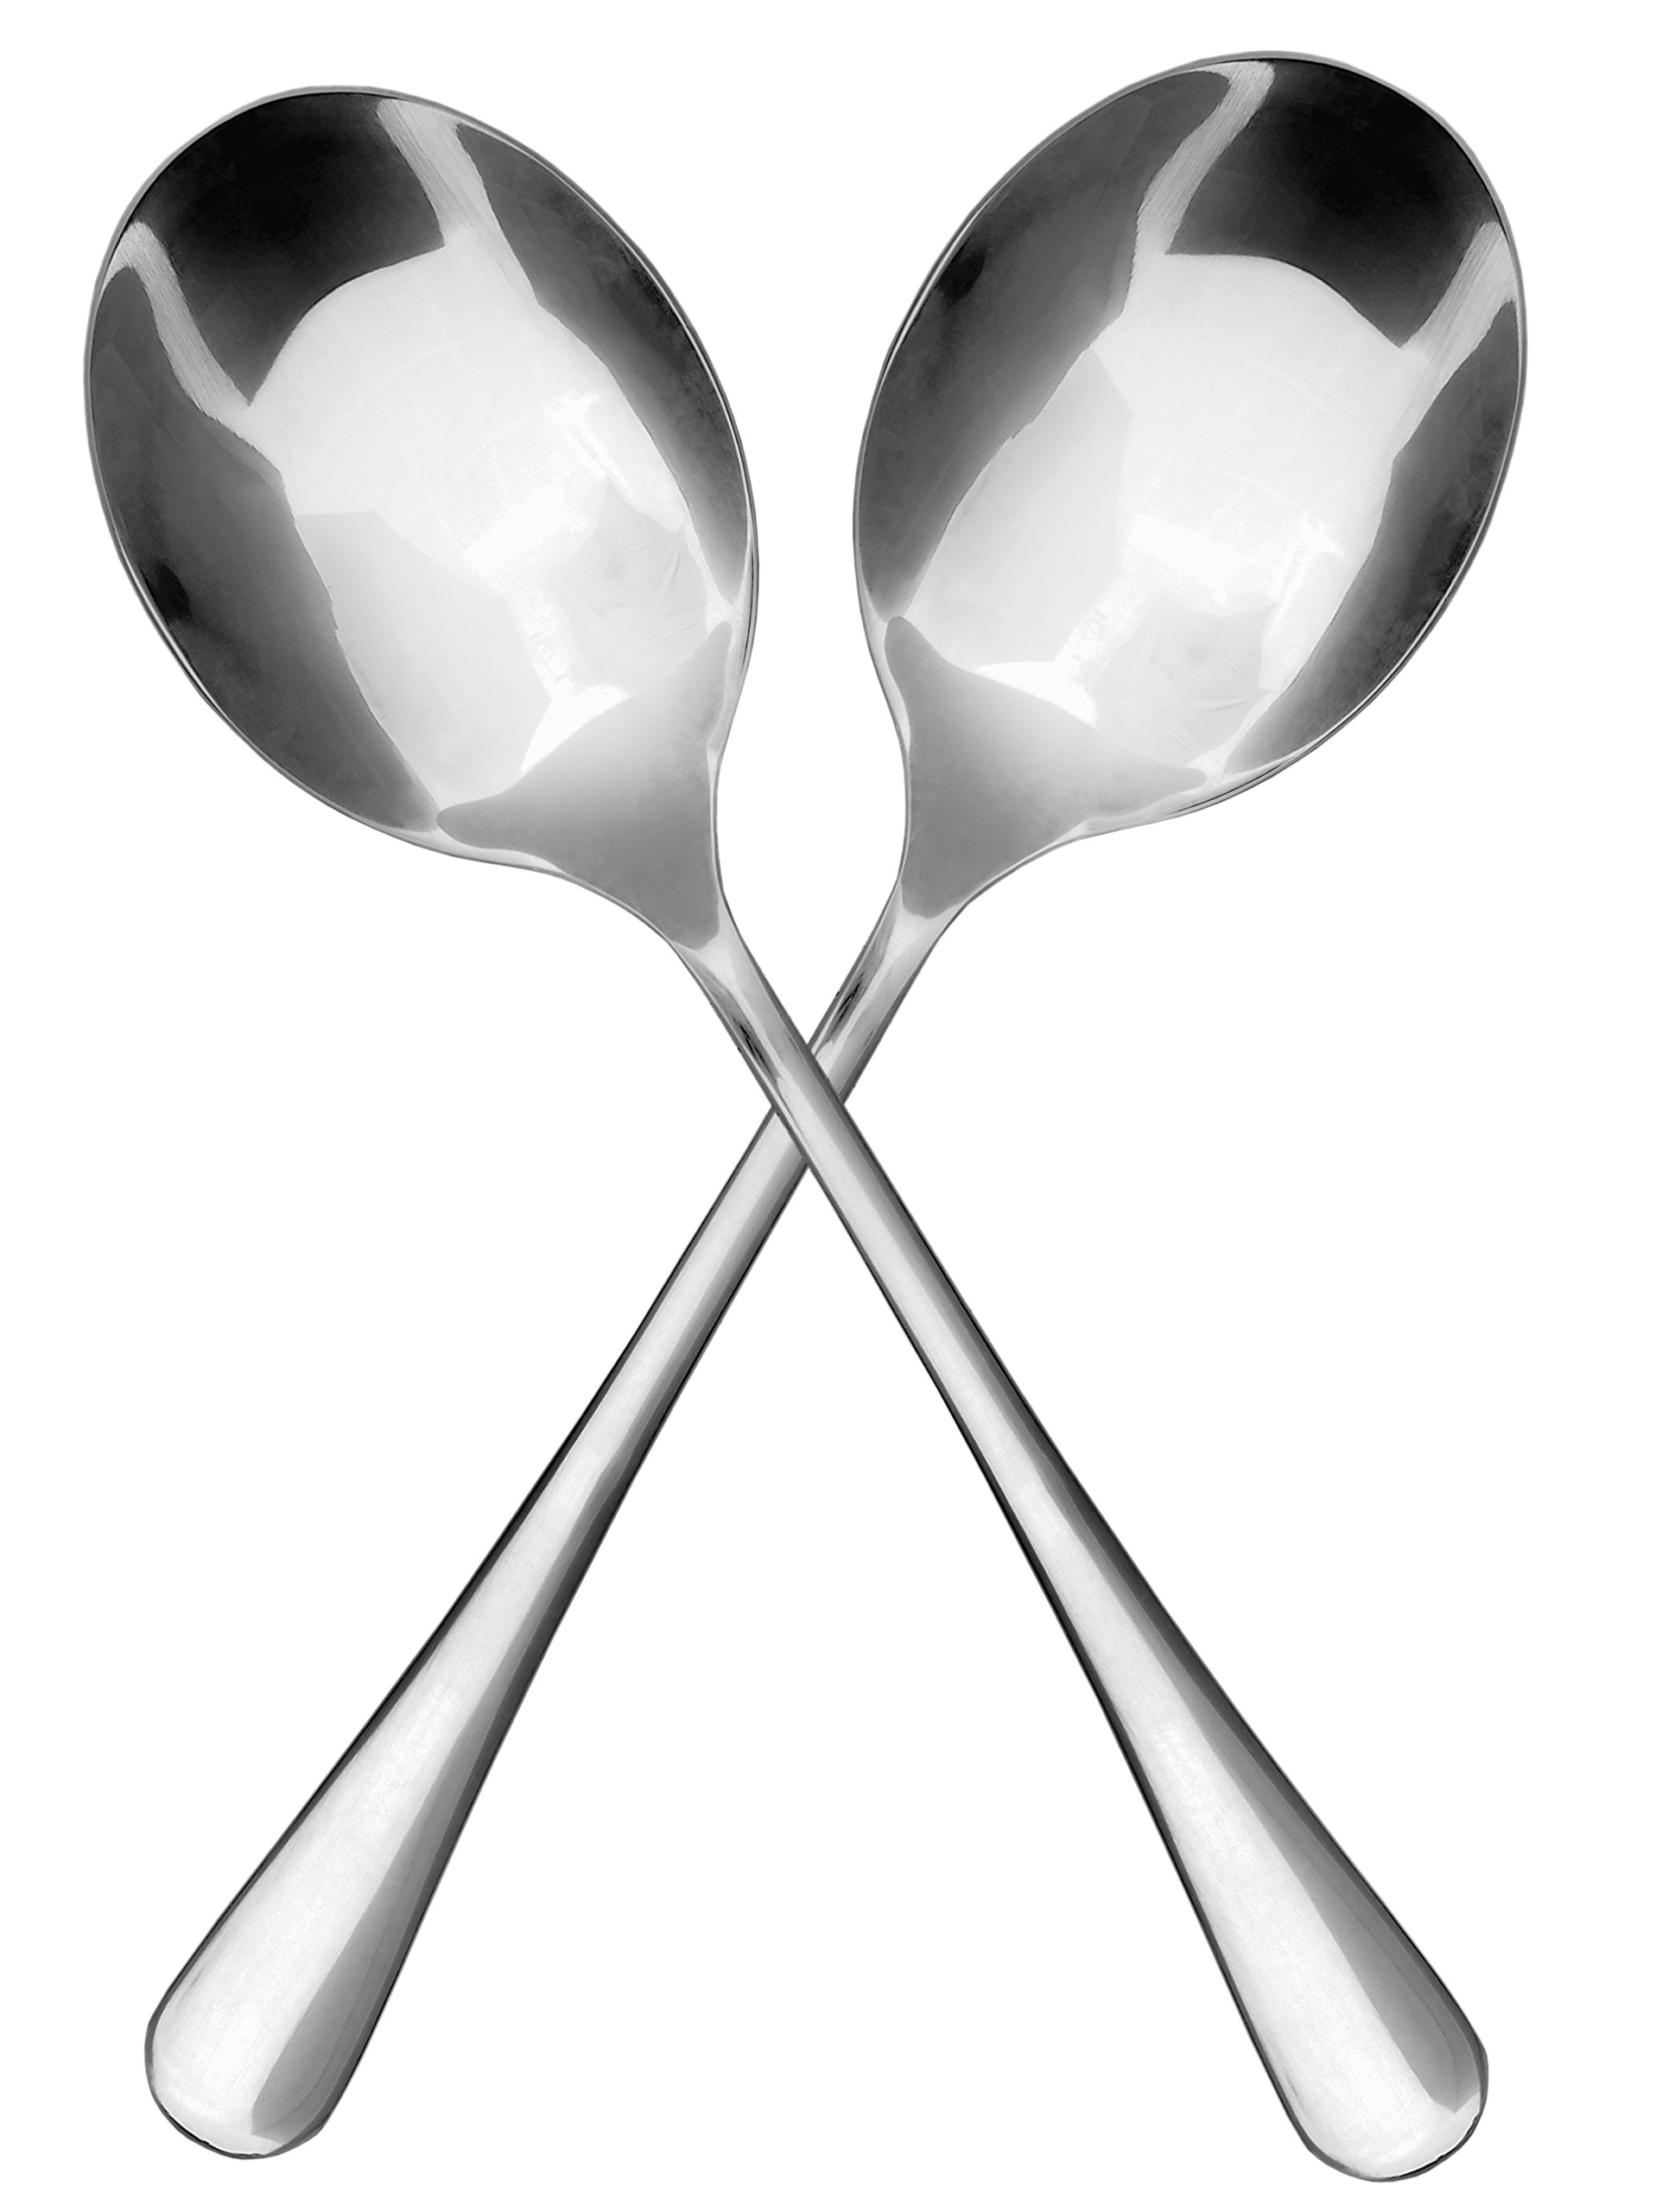 Stainless Steel X-Large Serving Spoons, Serving Utensil, Buffet & Banquet Style Serving Spoons-(2 Spoons)